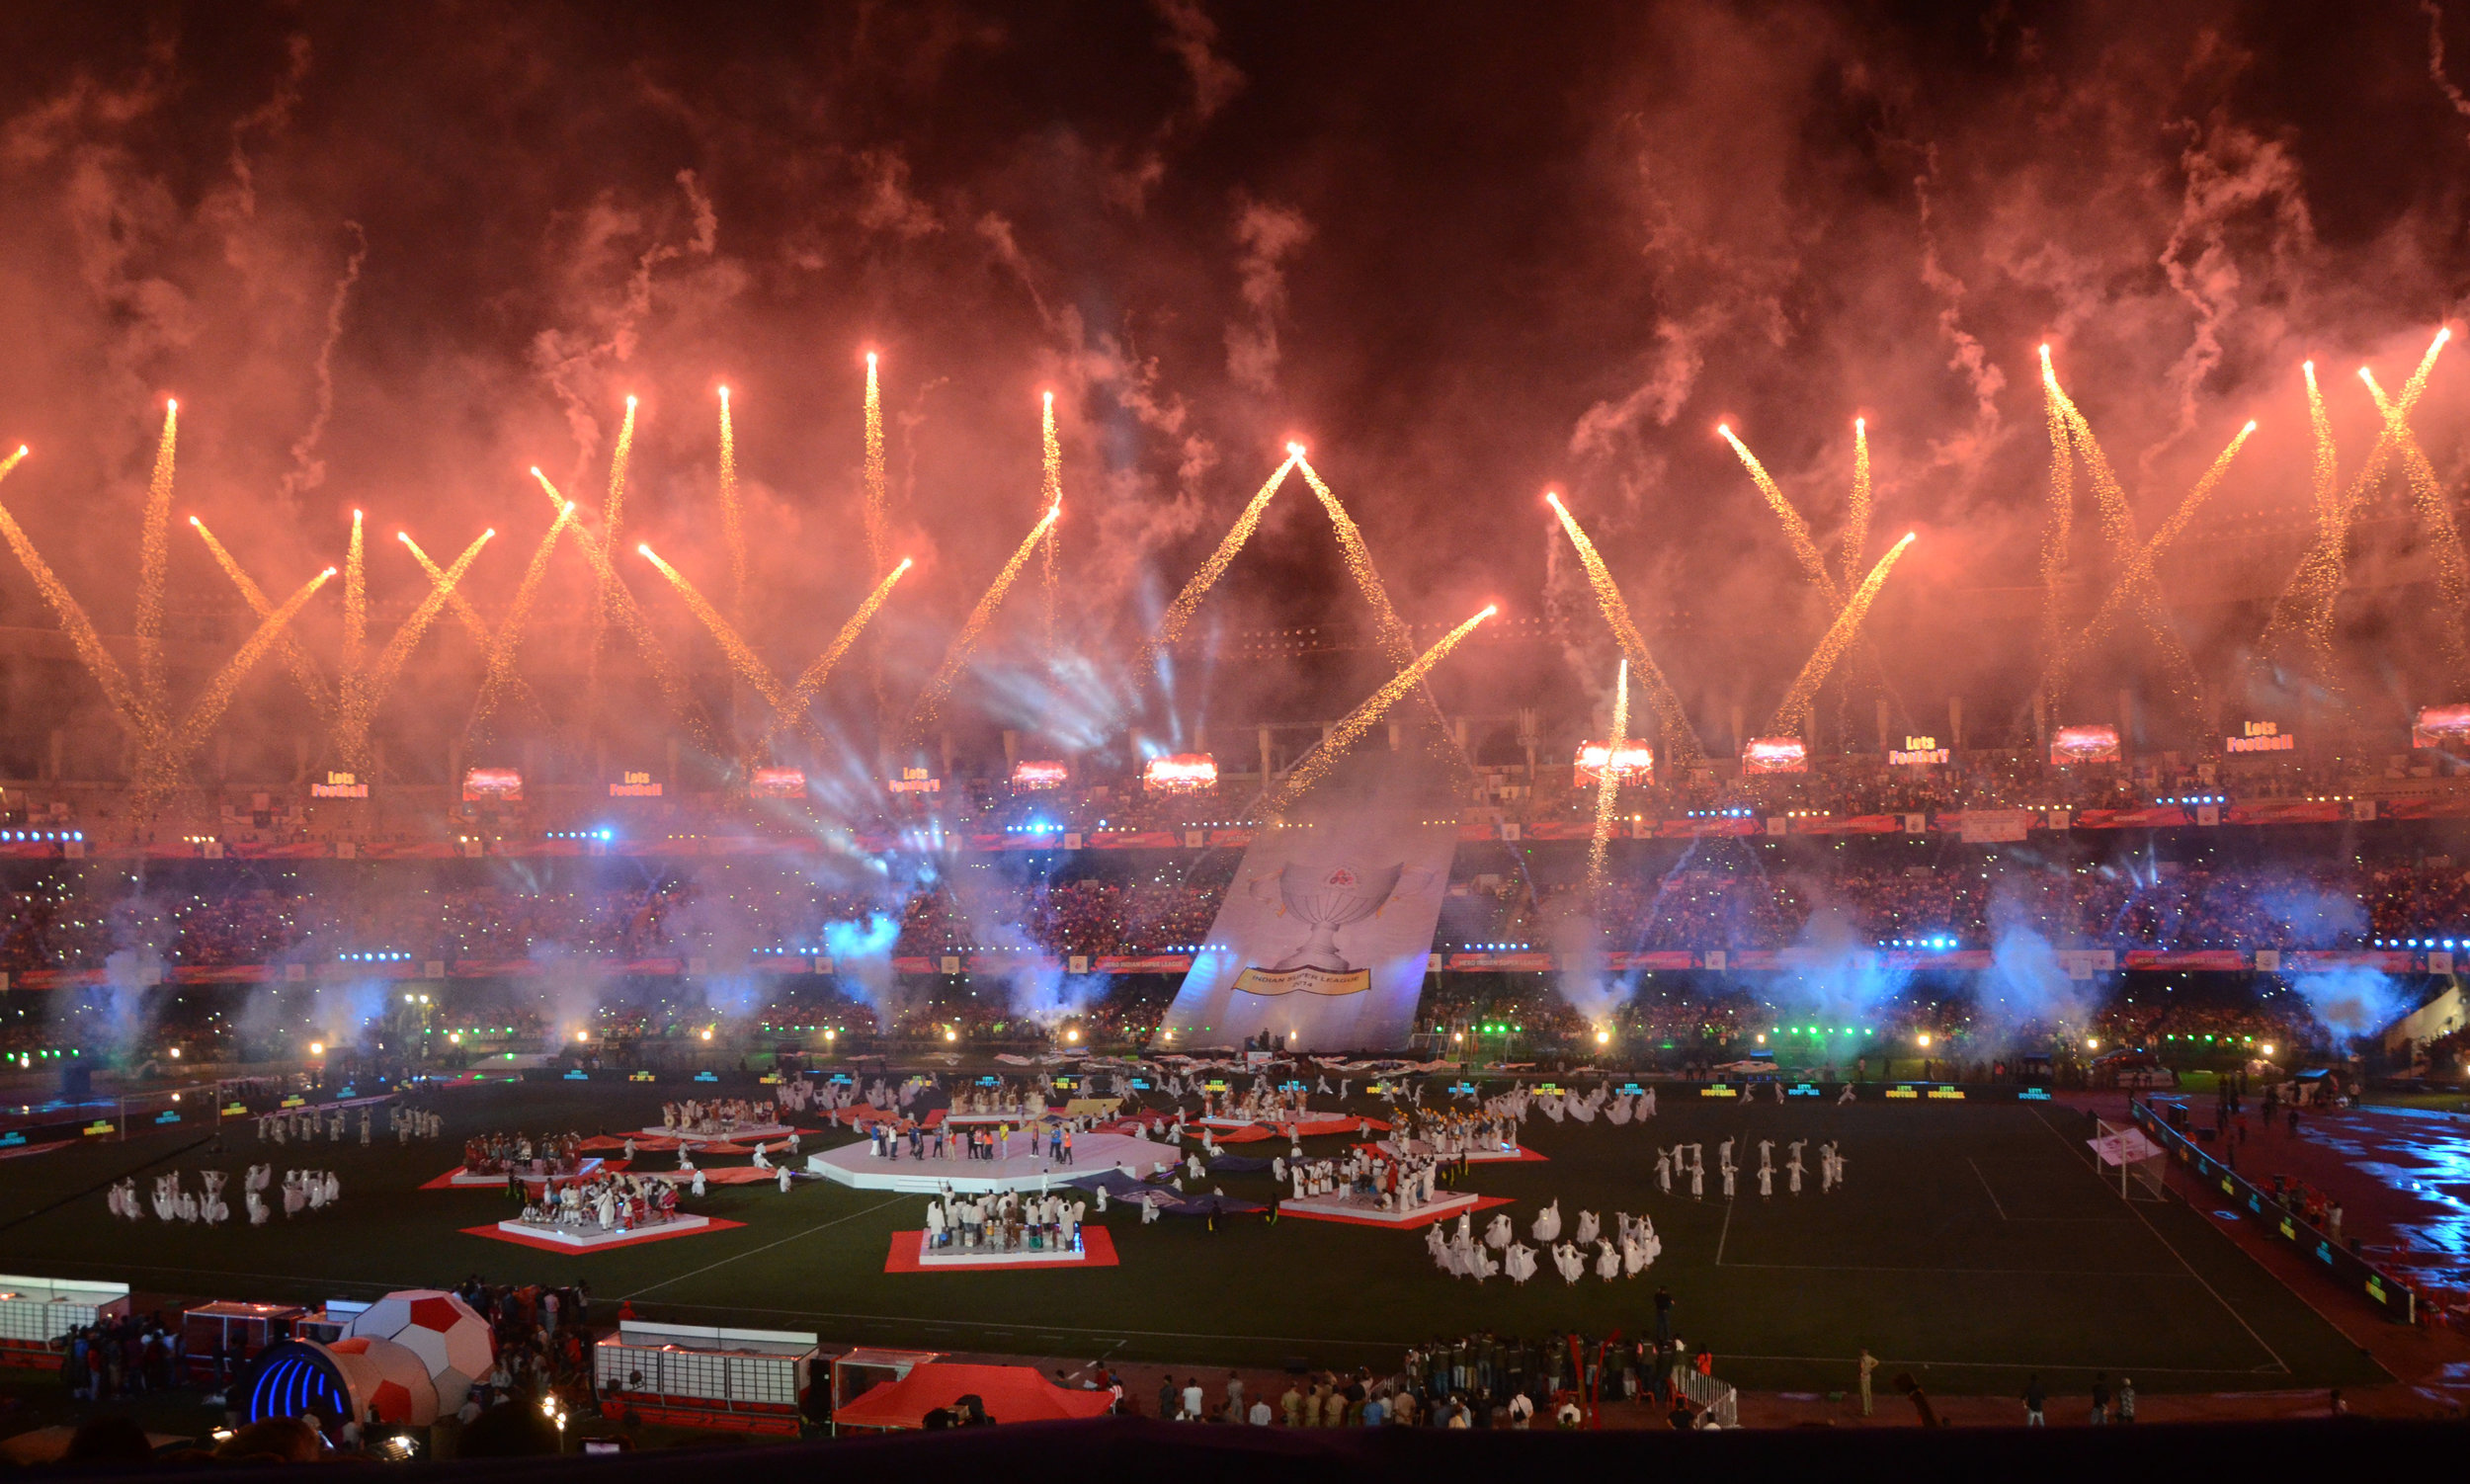 Fireworks at the opening ceremony of the Indian Super League in Kolkata in 2014. In its first week, the ISL pulled in over forty million viewers. Photo by Sonali Pal Chaudhury/NurPhoto